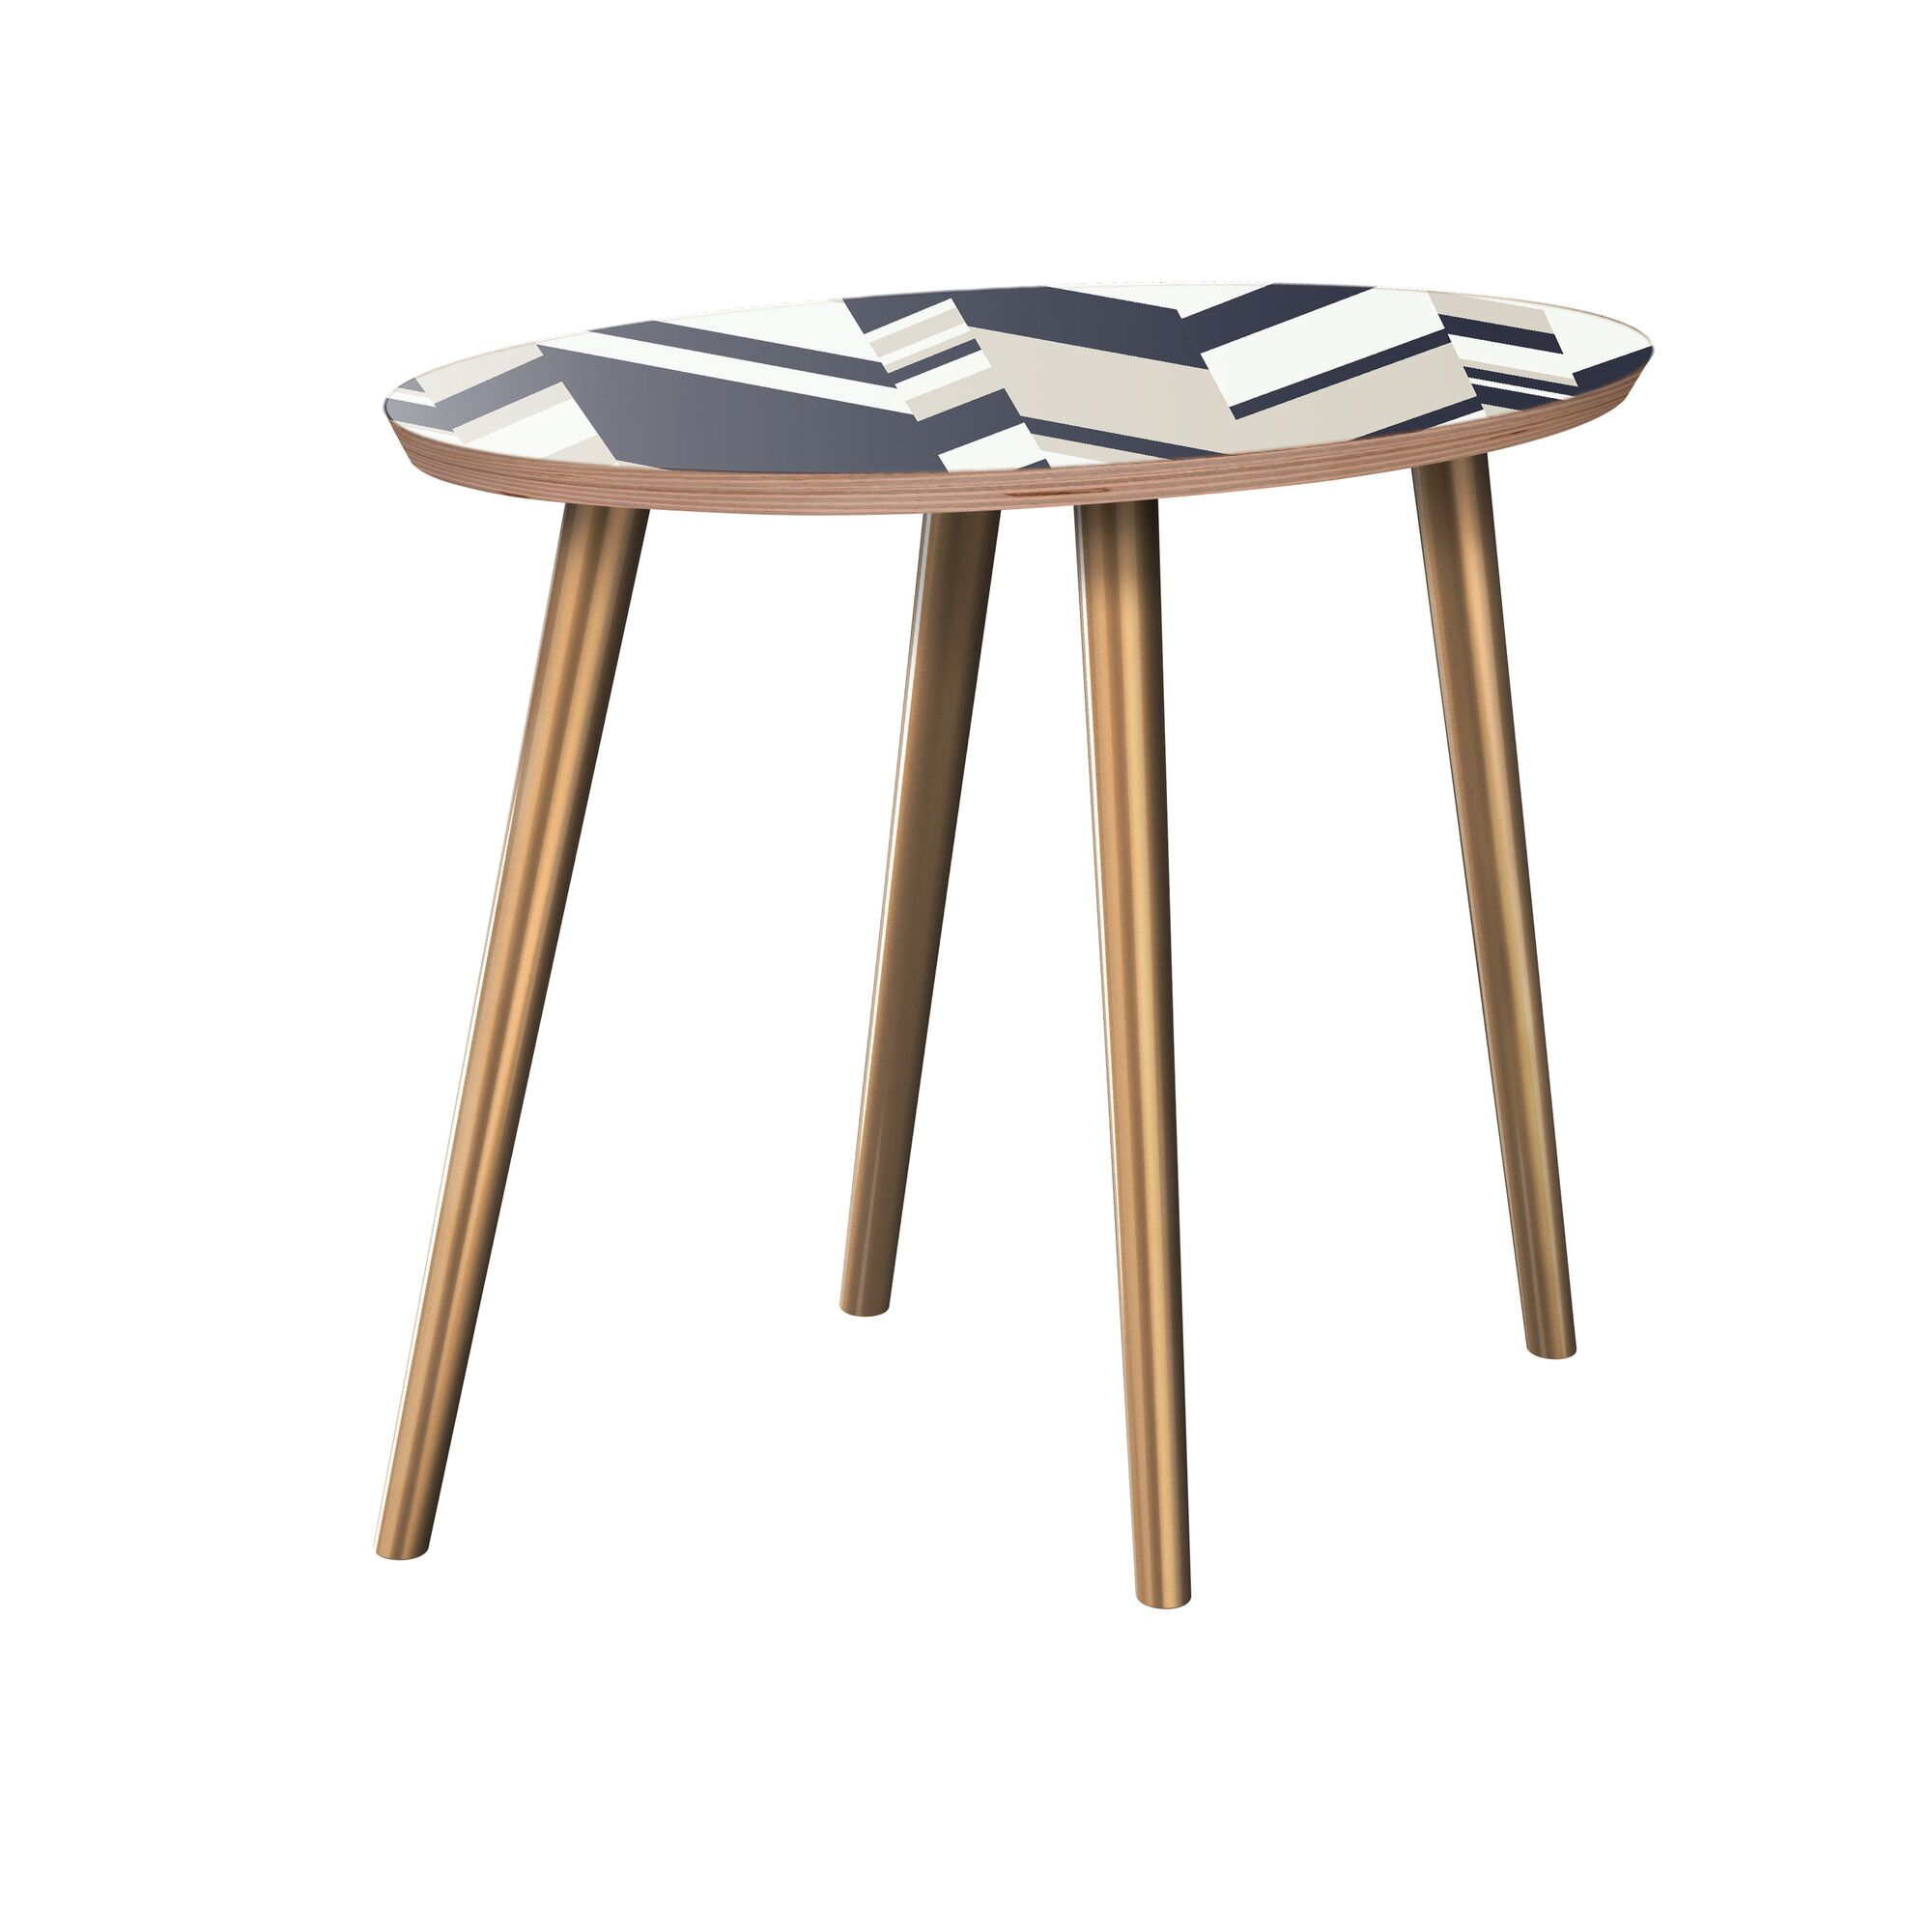 Gallman End Table Table Base Color: Brass, Table Top Color: Walnut